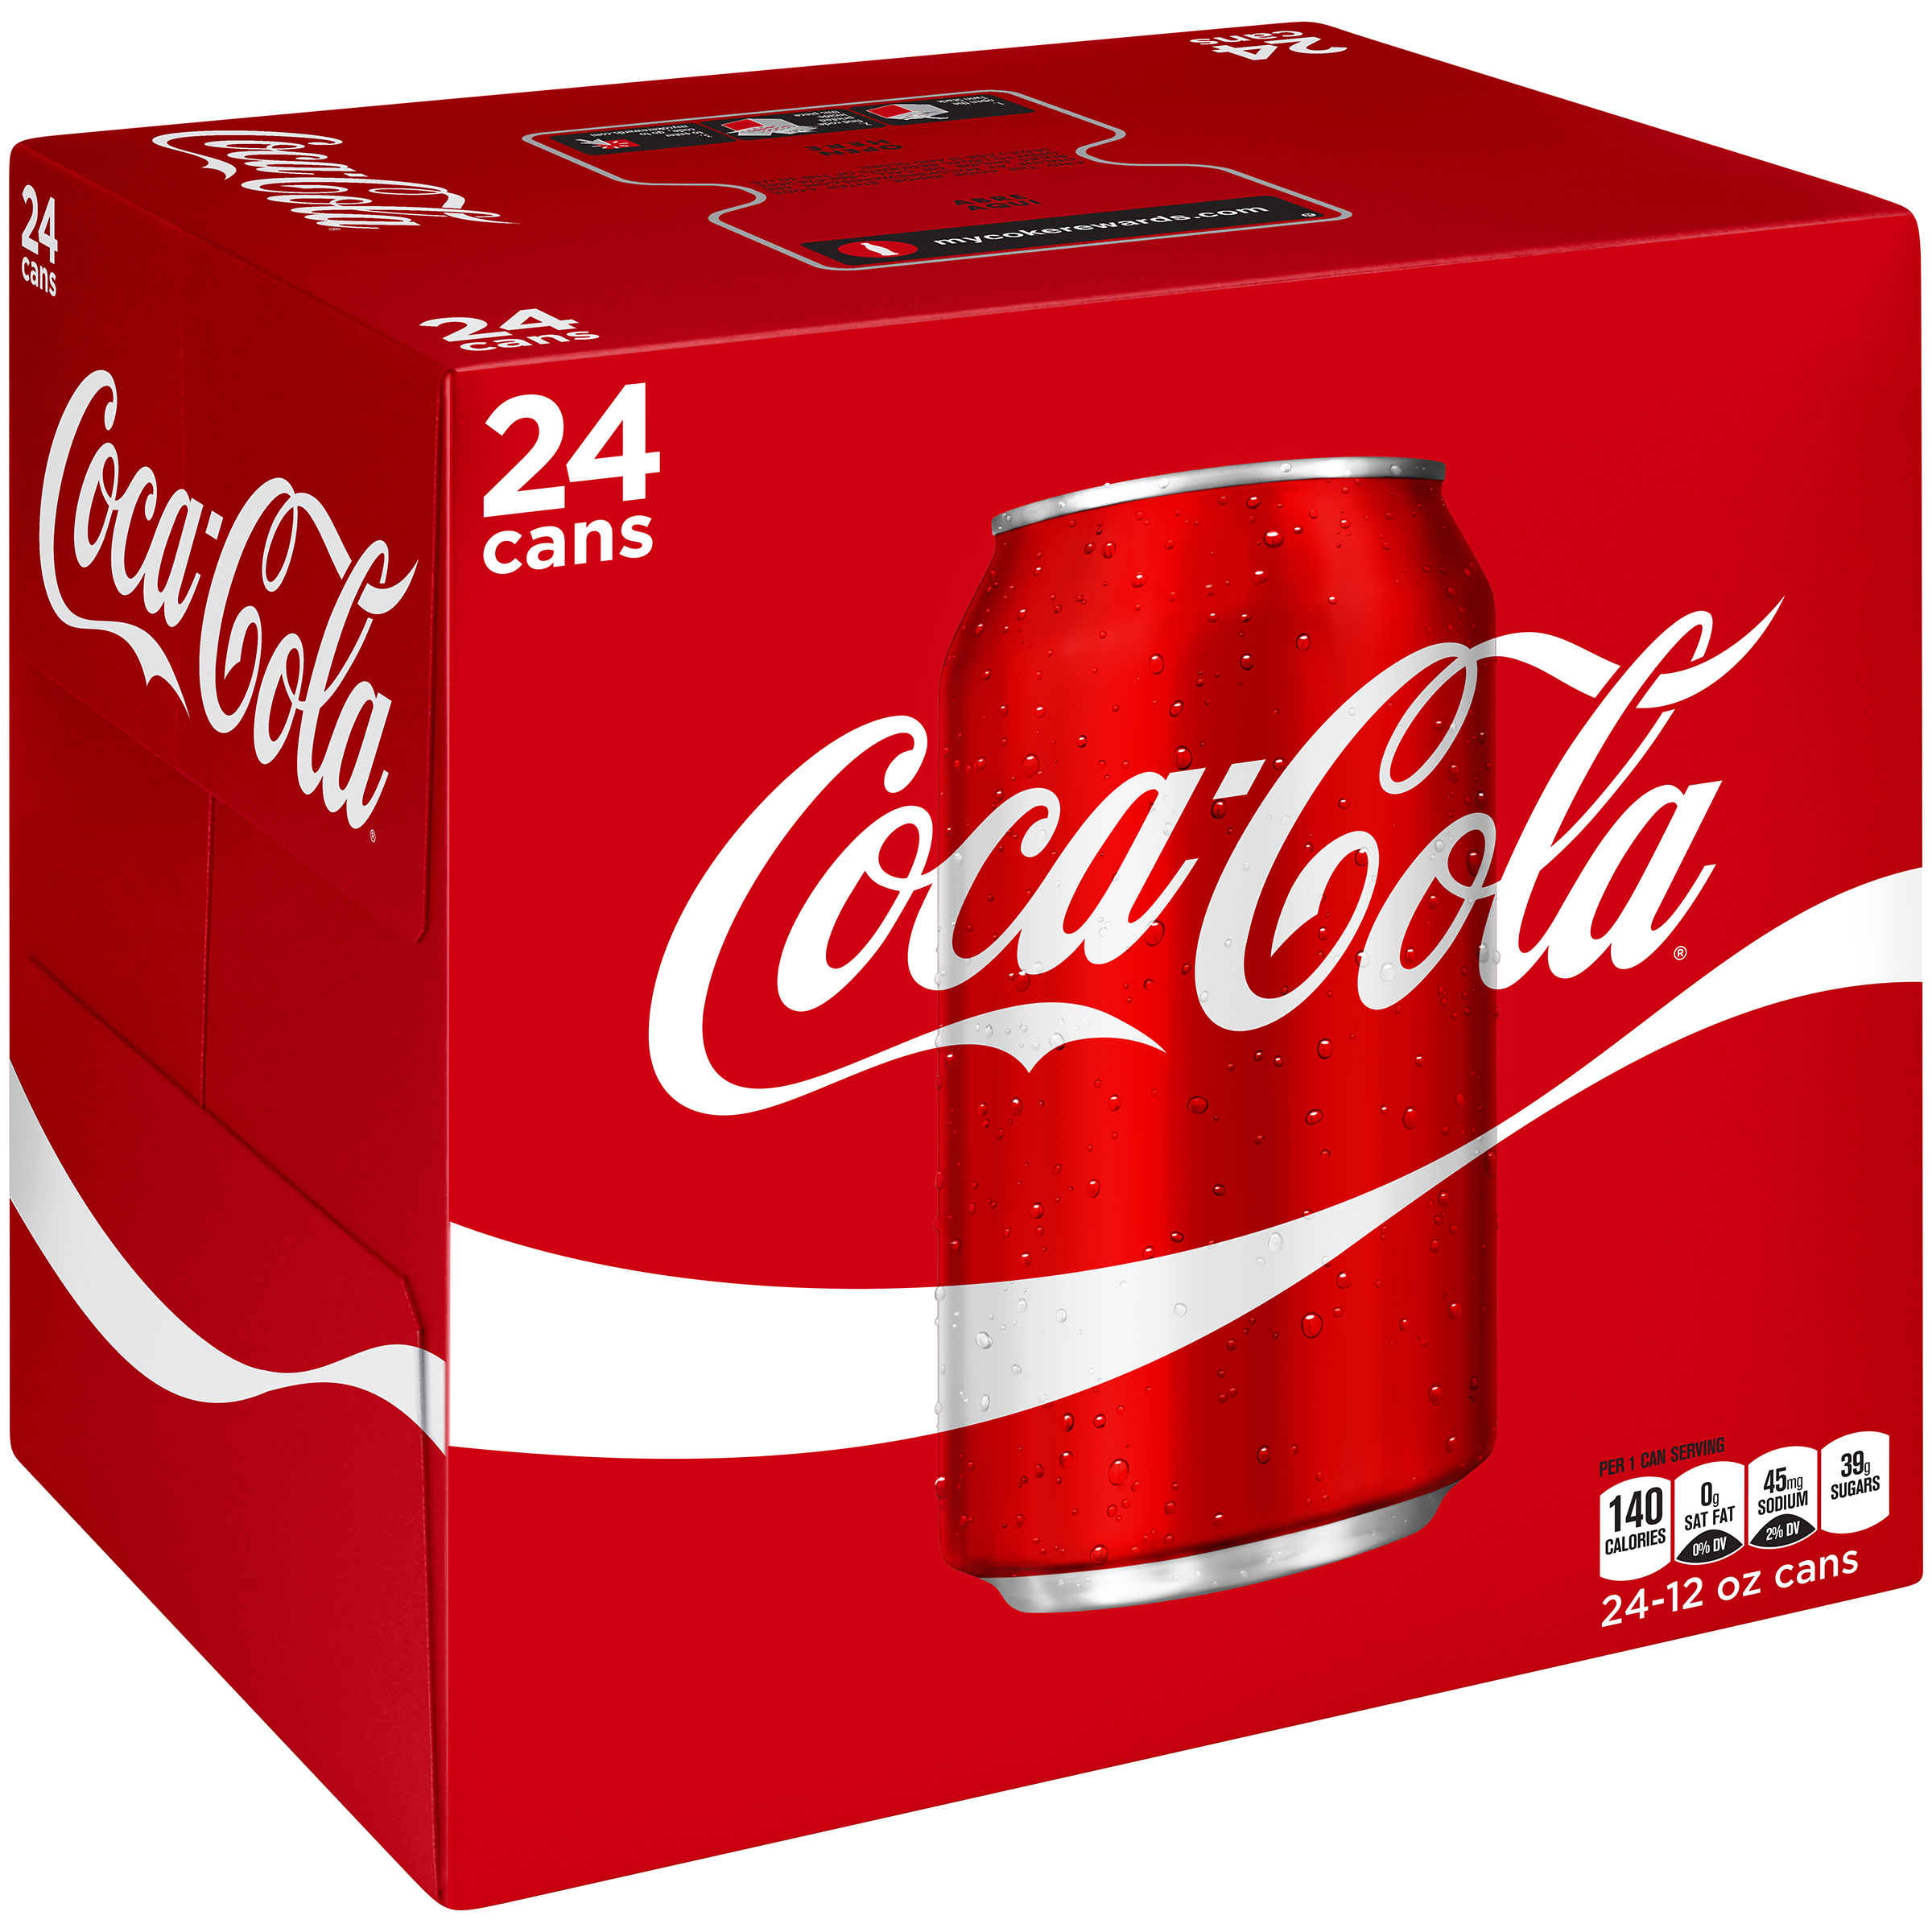 Coca-Cola Cans, 12 fl oz, 24 Pack by Generic